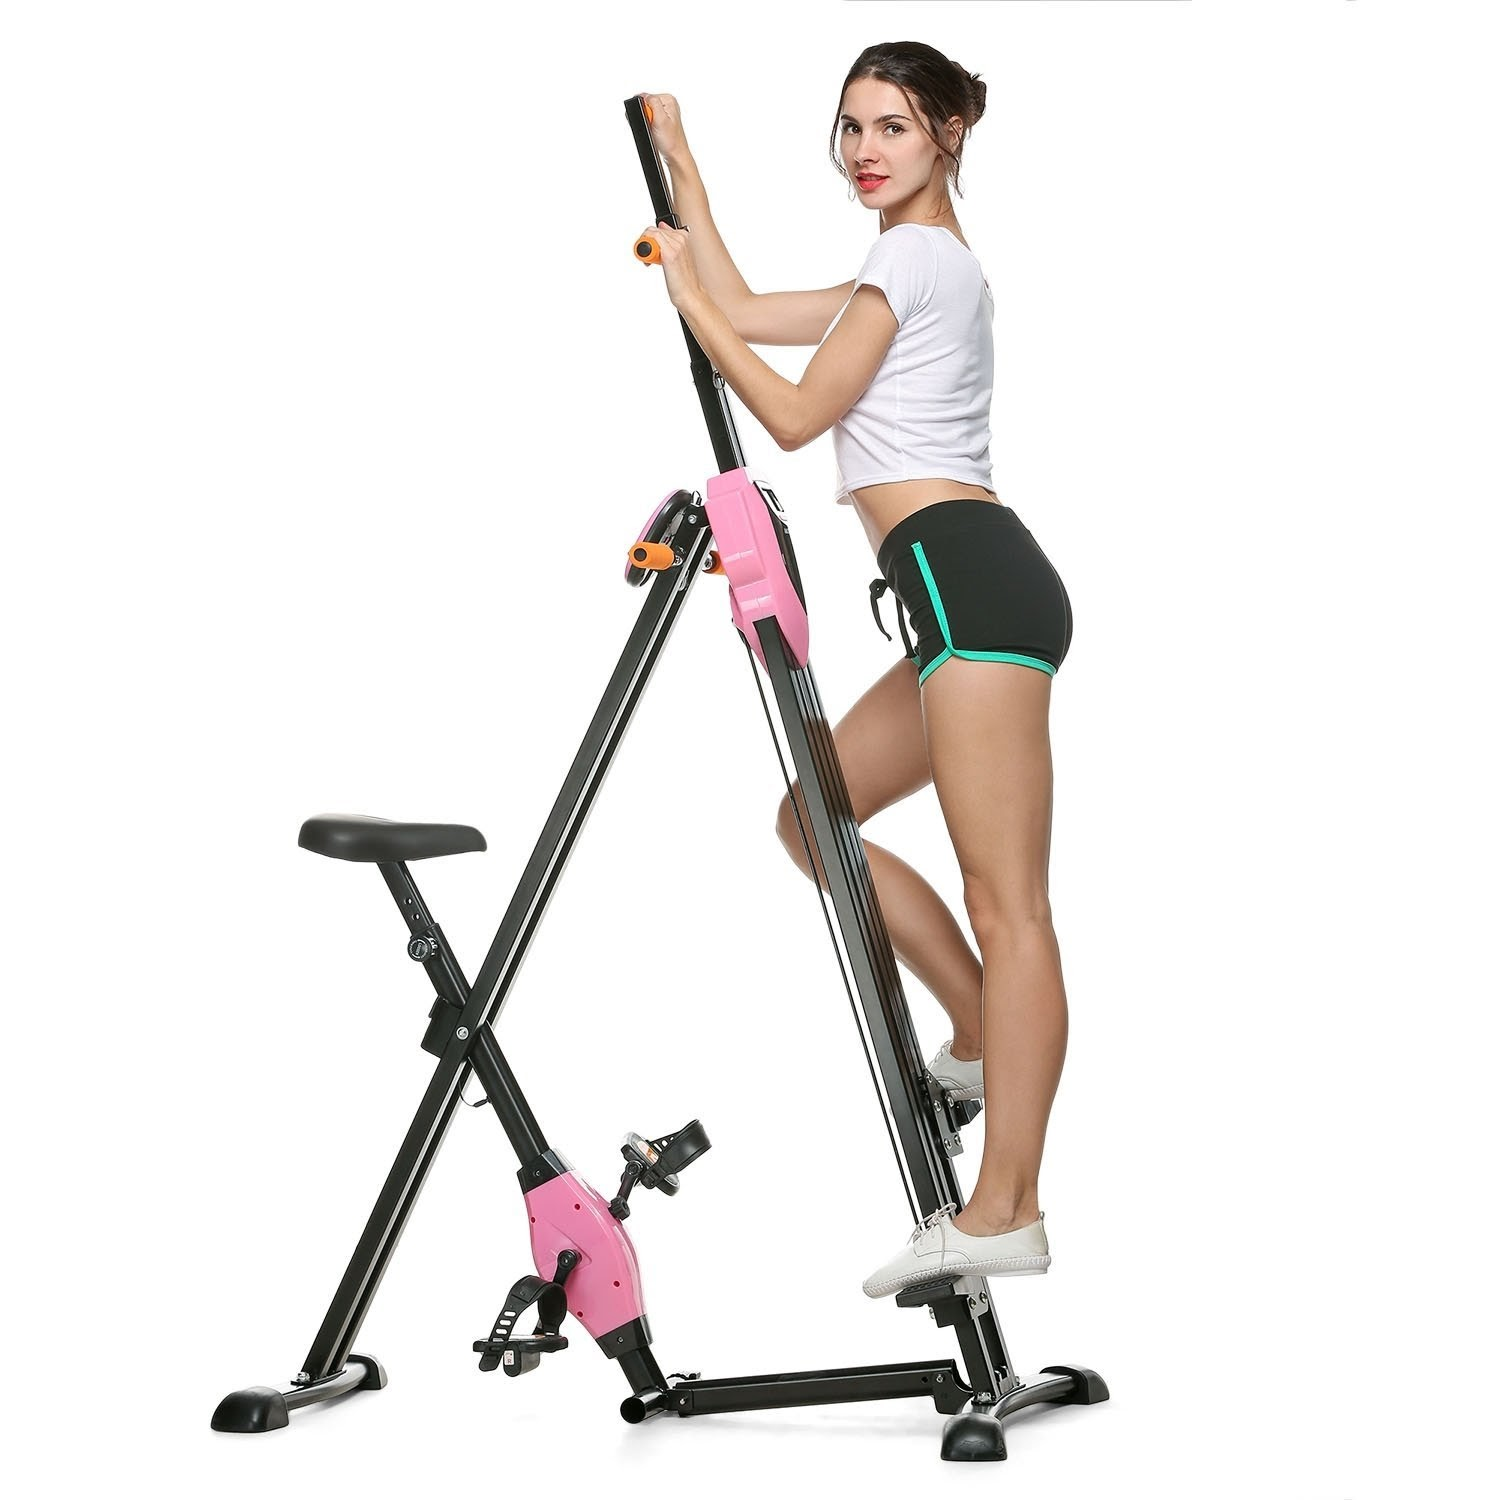 Top Exercise Equipment: Best Maxi Climber Review 2019